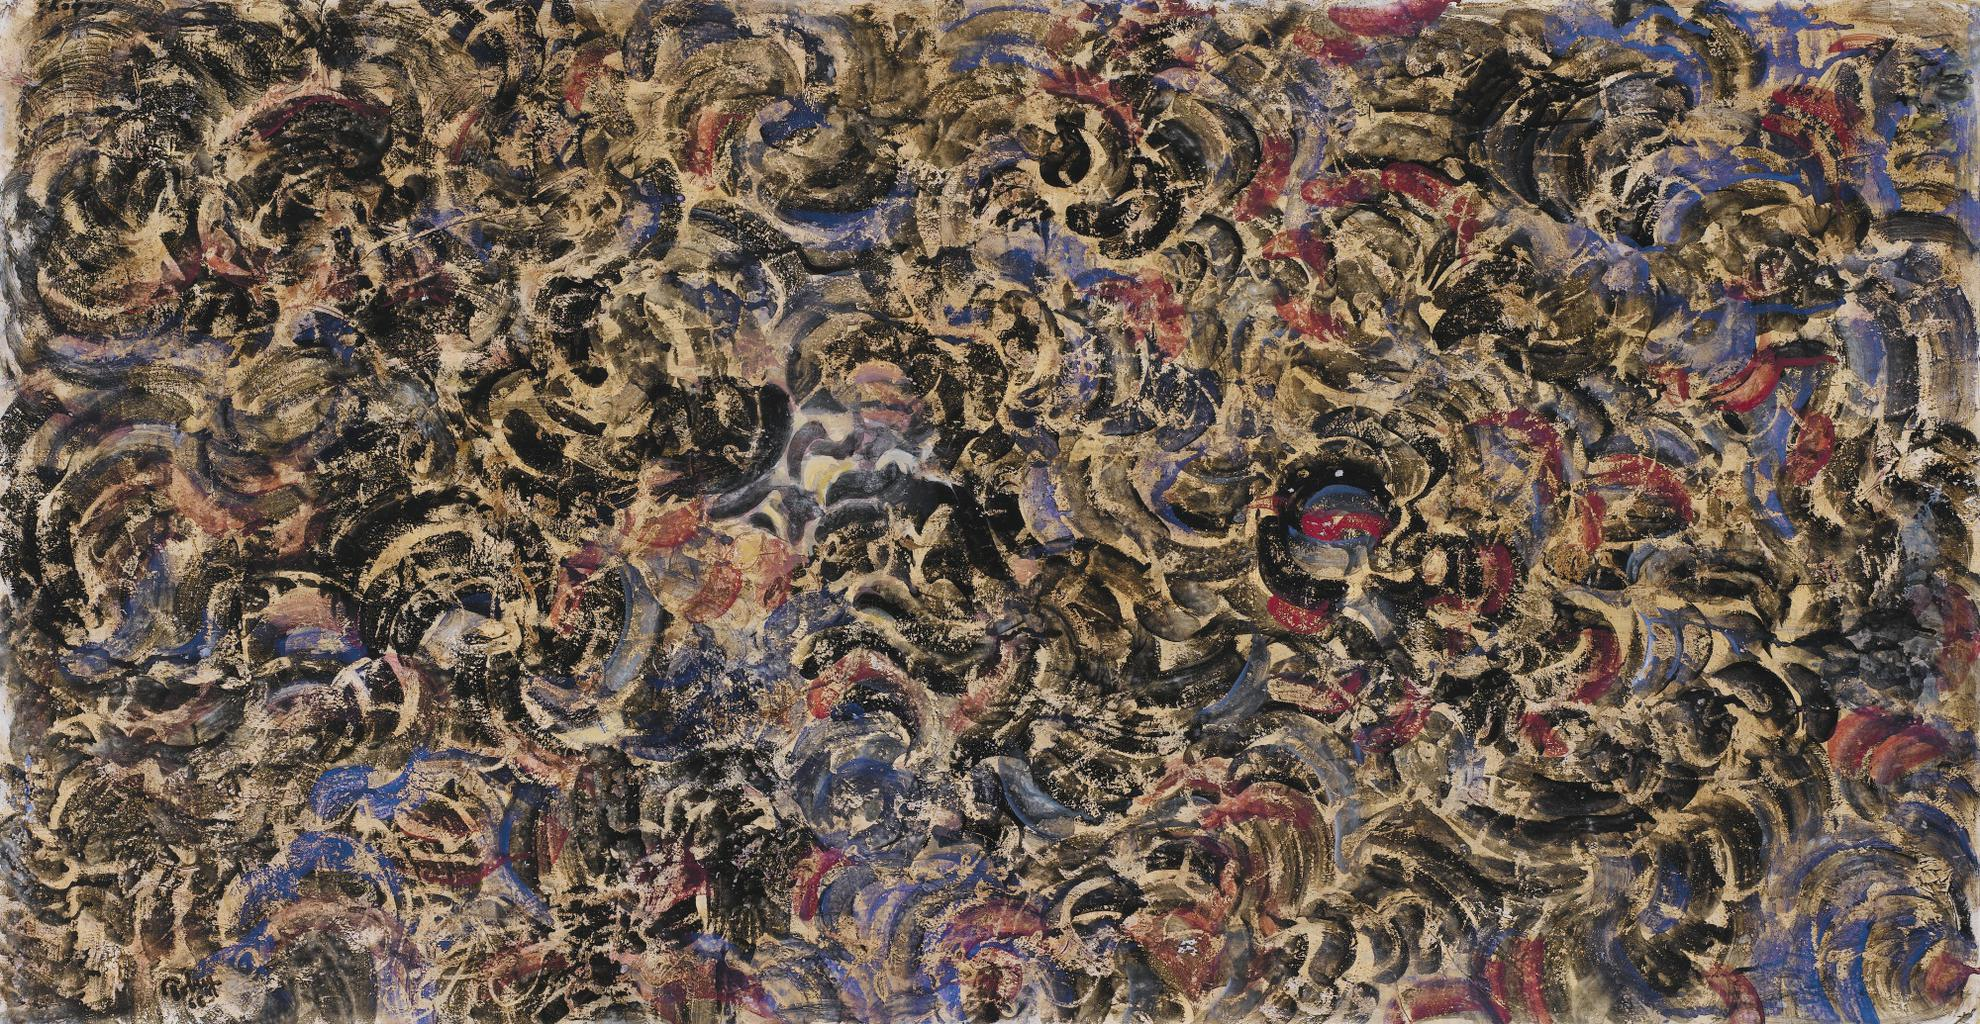 Mark Tobey-Tumult-1966